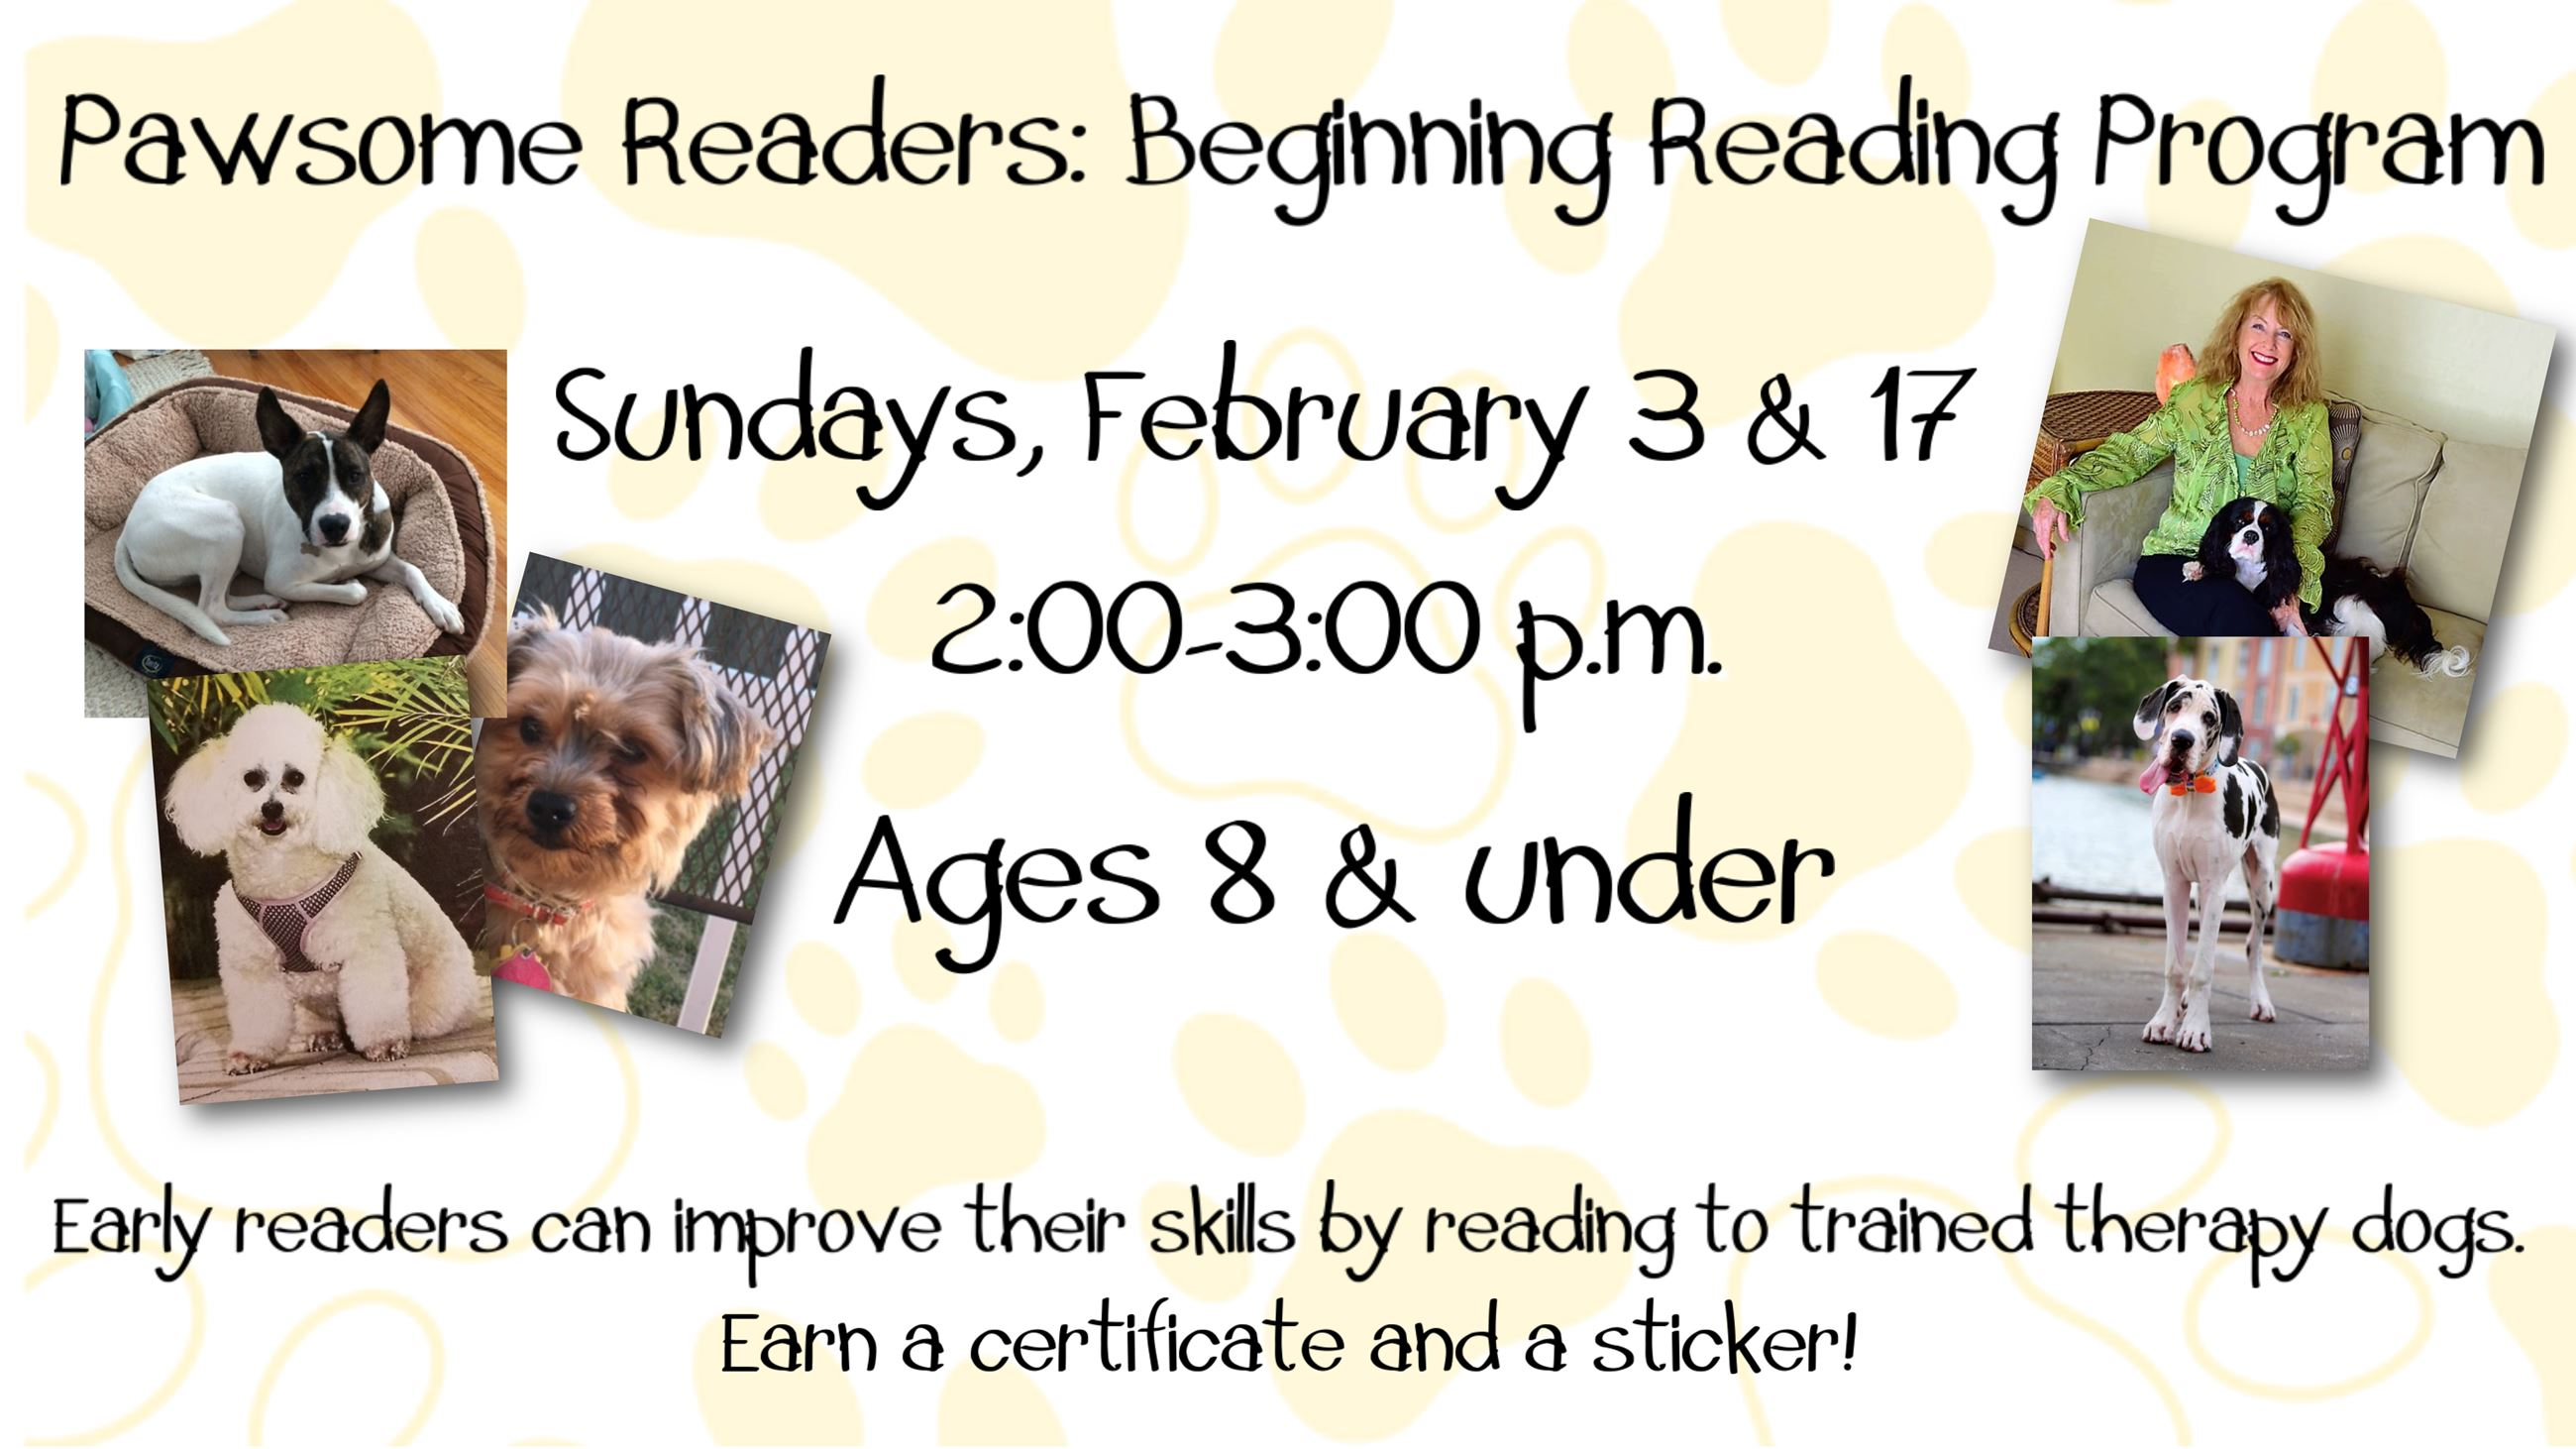 Pawsome Readers. February 3 & 17. 2 to 3 p.m. Ages 8 & under. Early readers can improve their skills